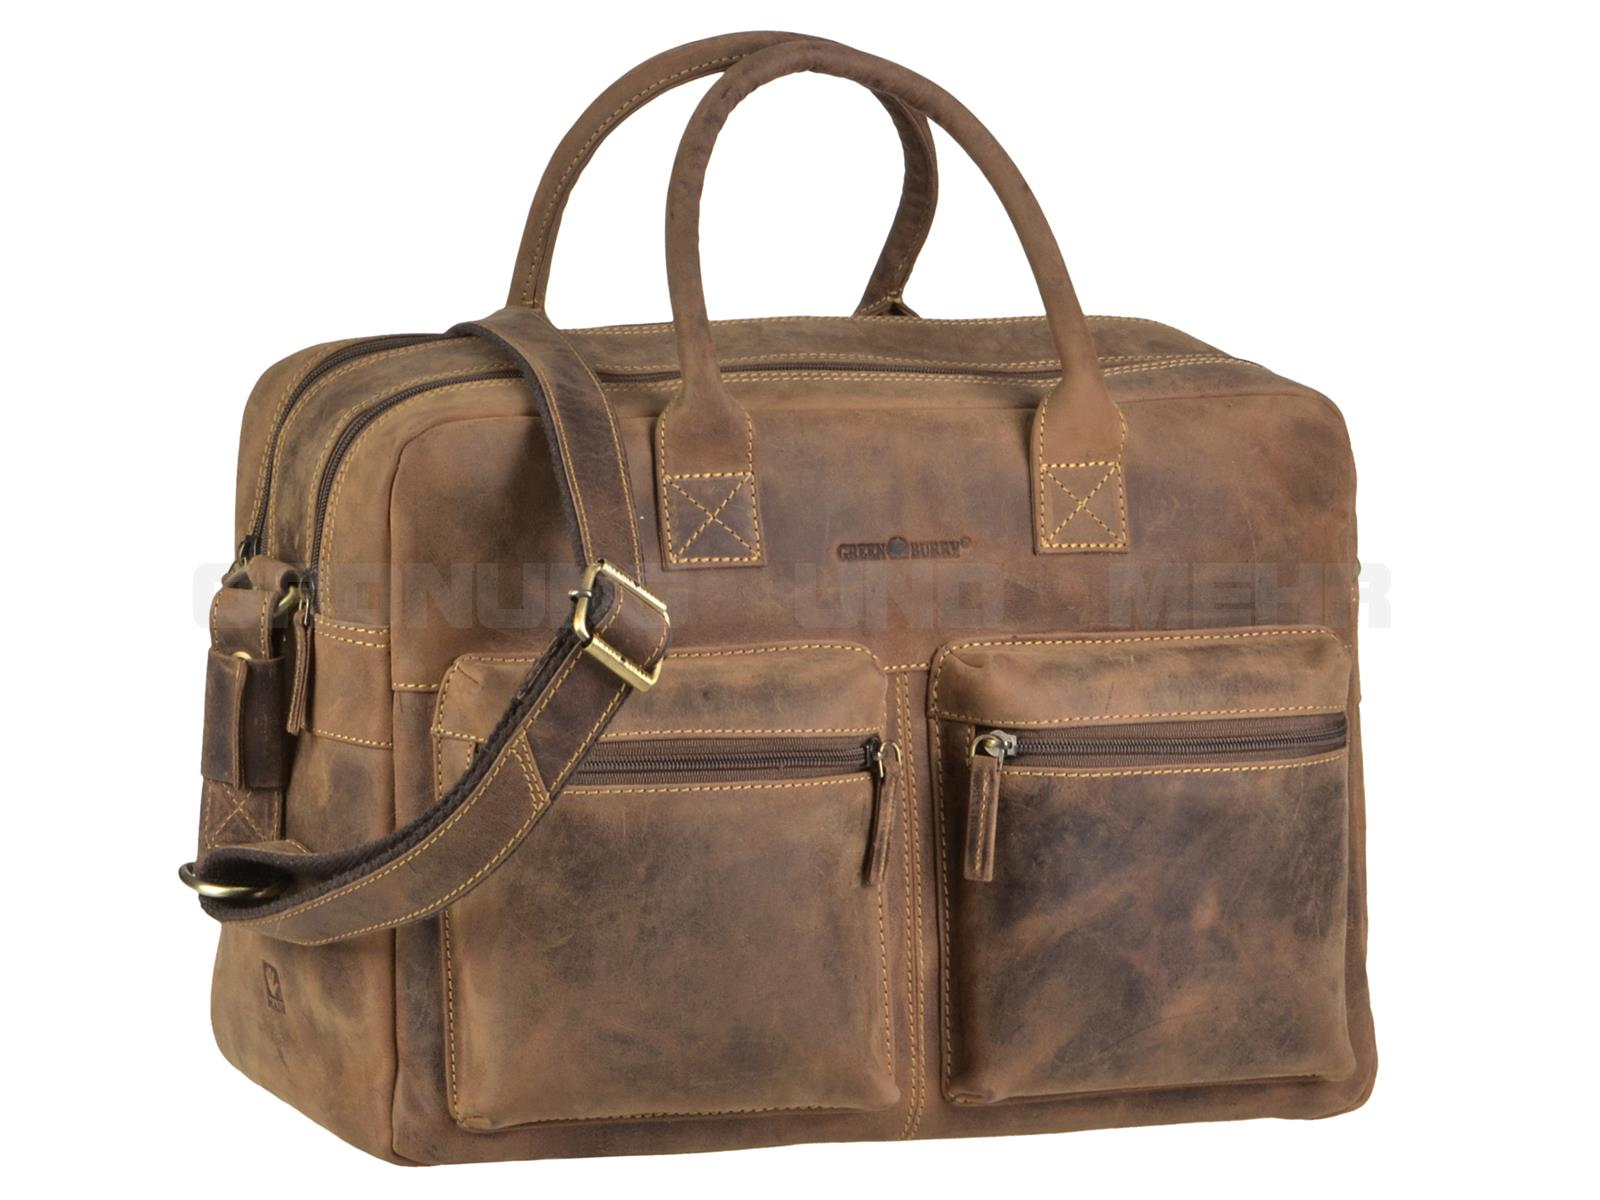 Greenburry Businessbag VINTAGE 1674-25